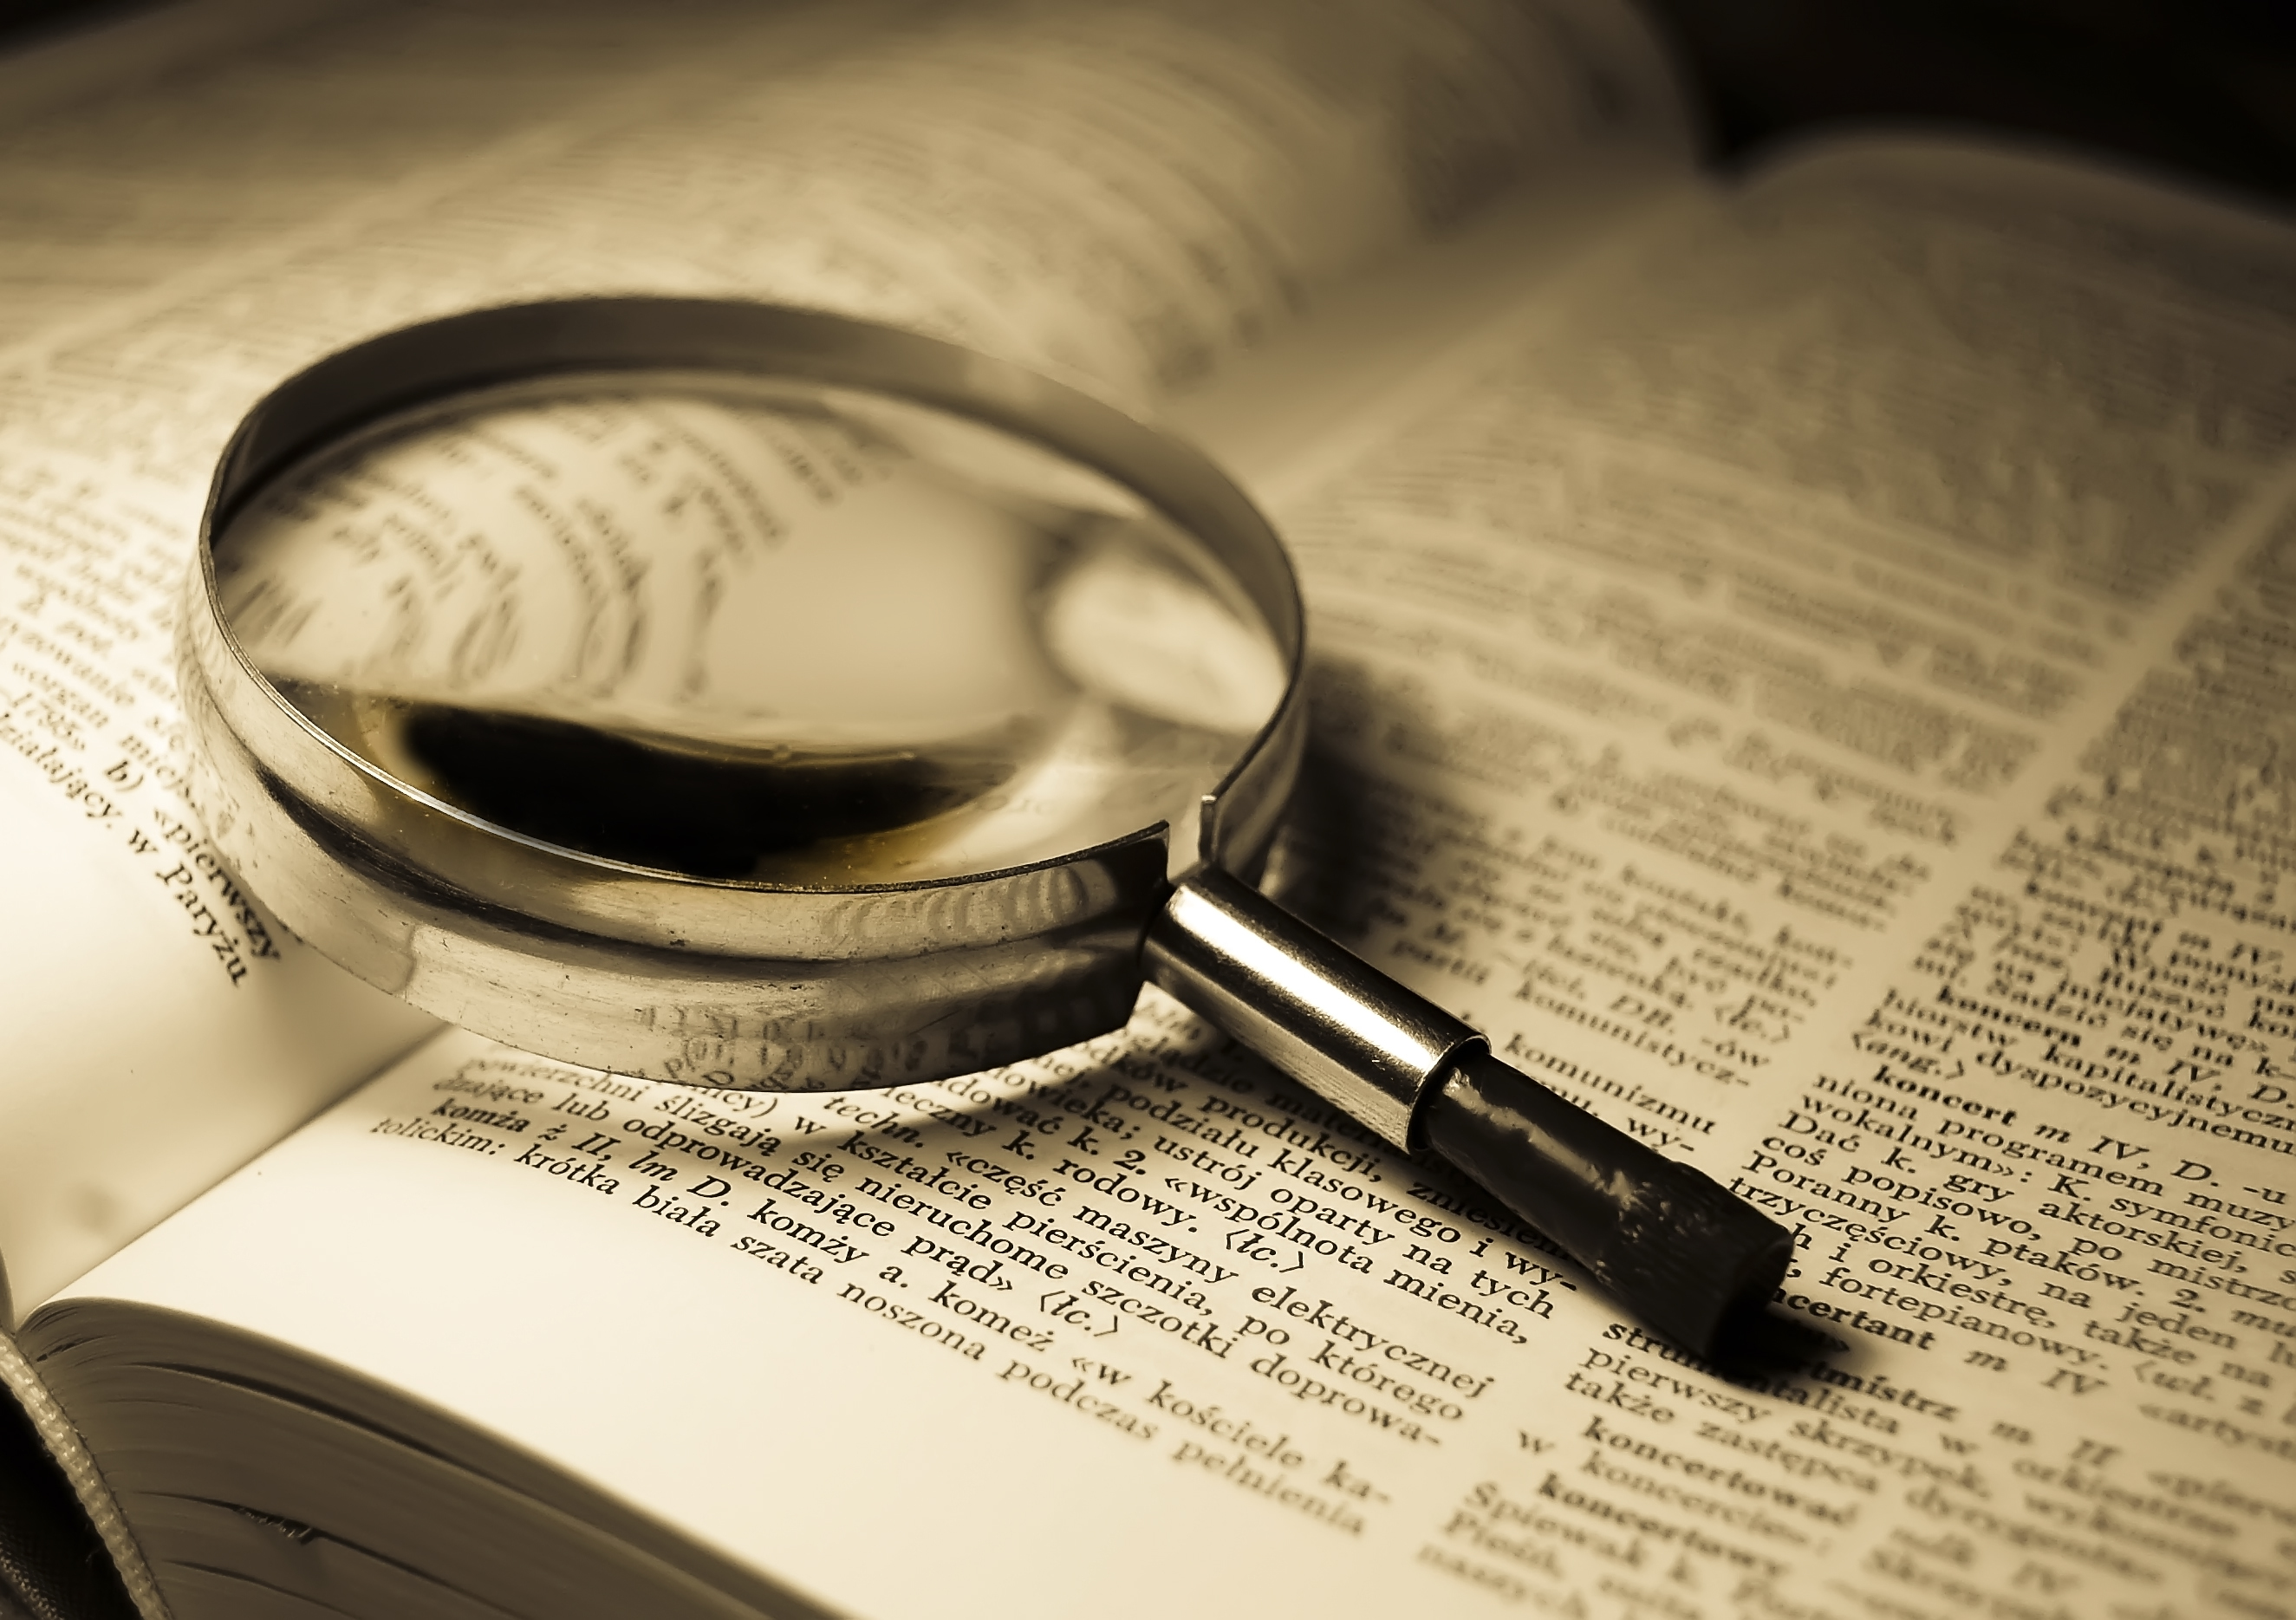 dictionary, magnifying glass